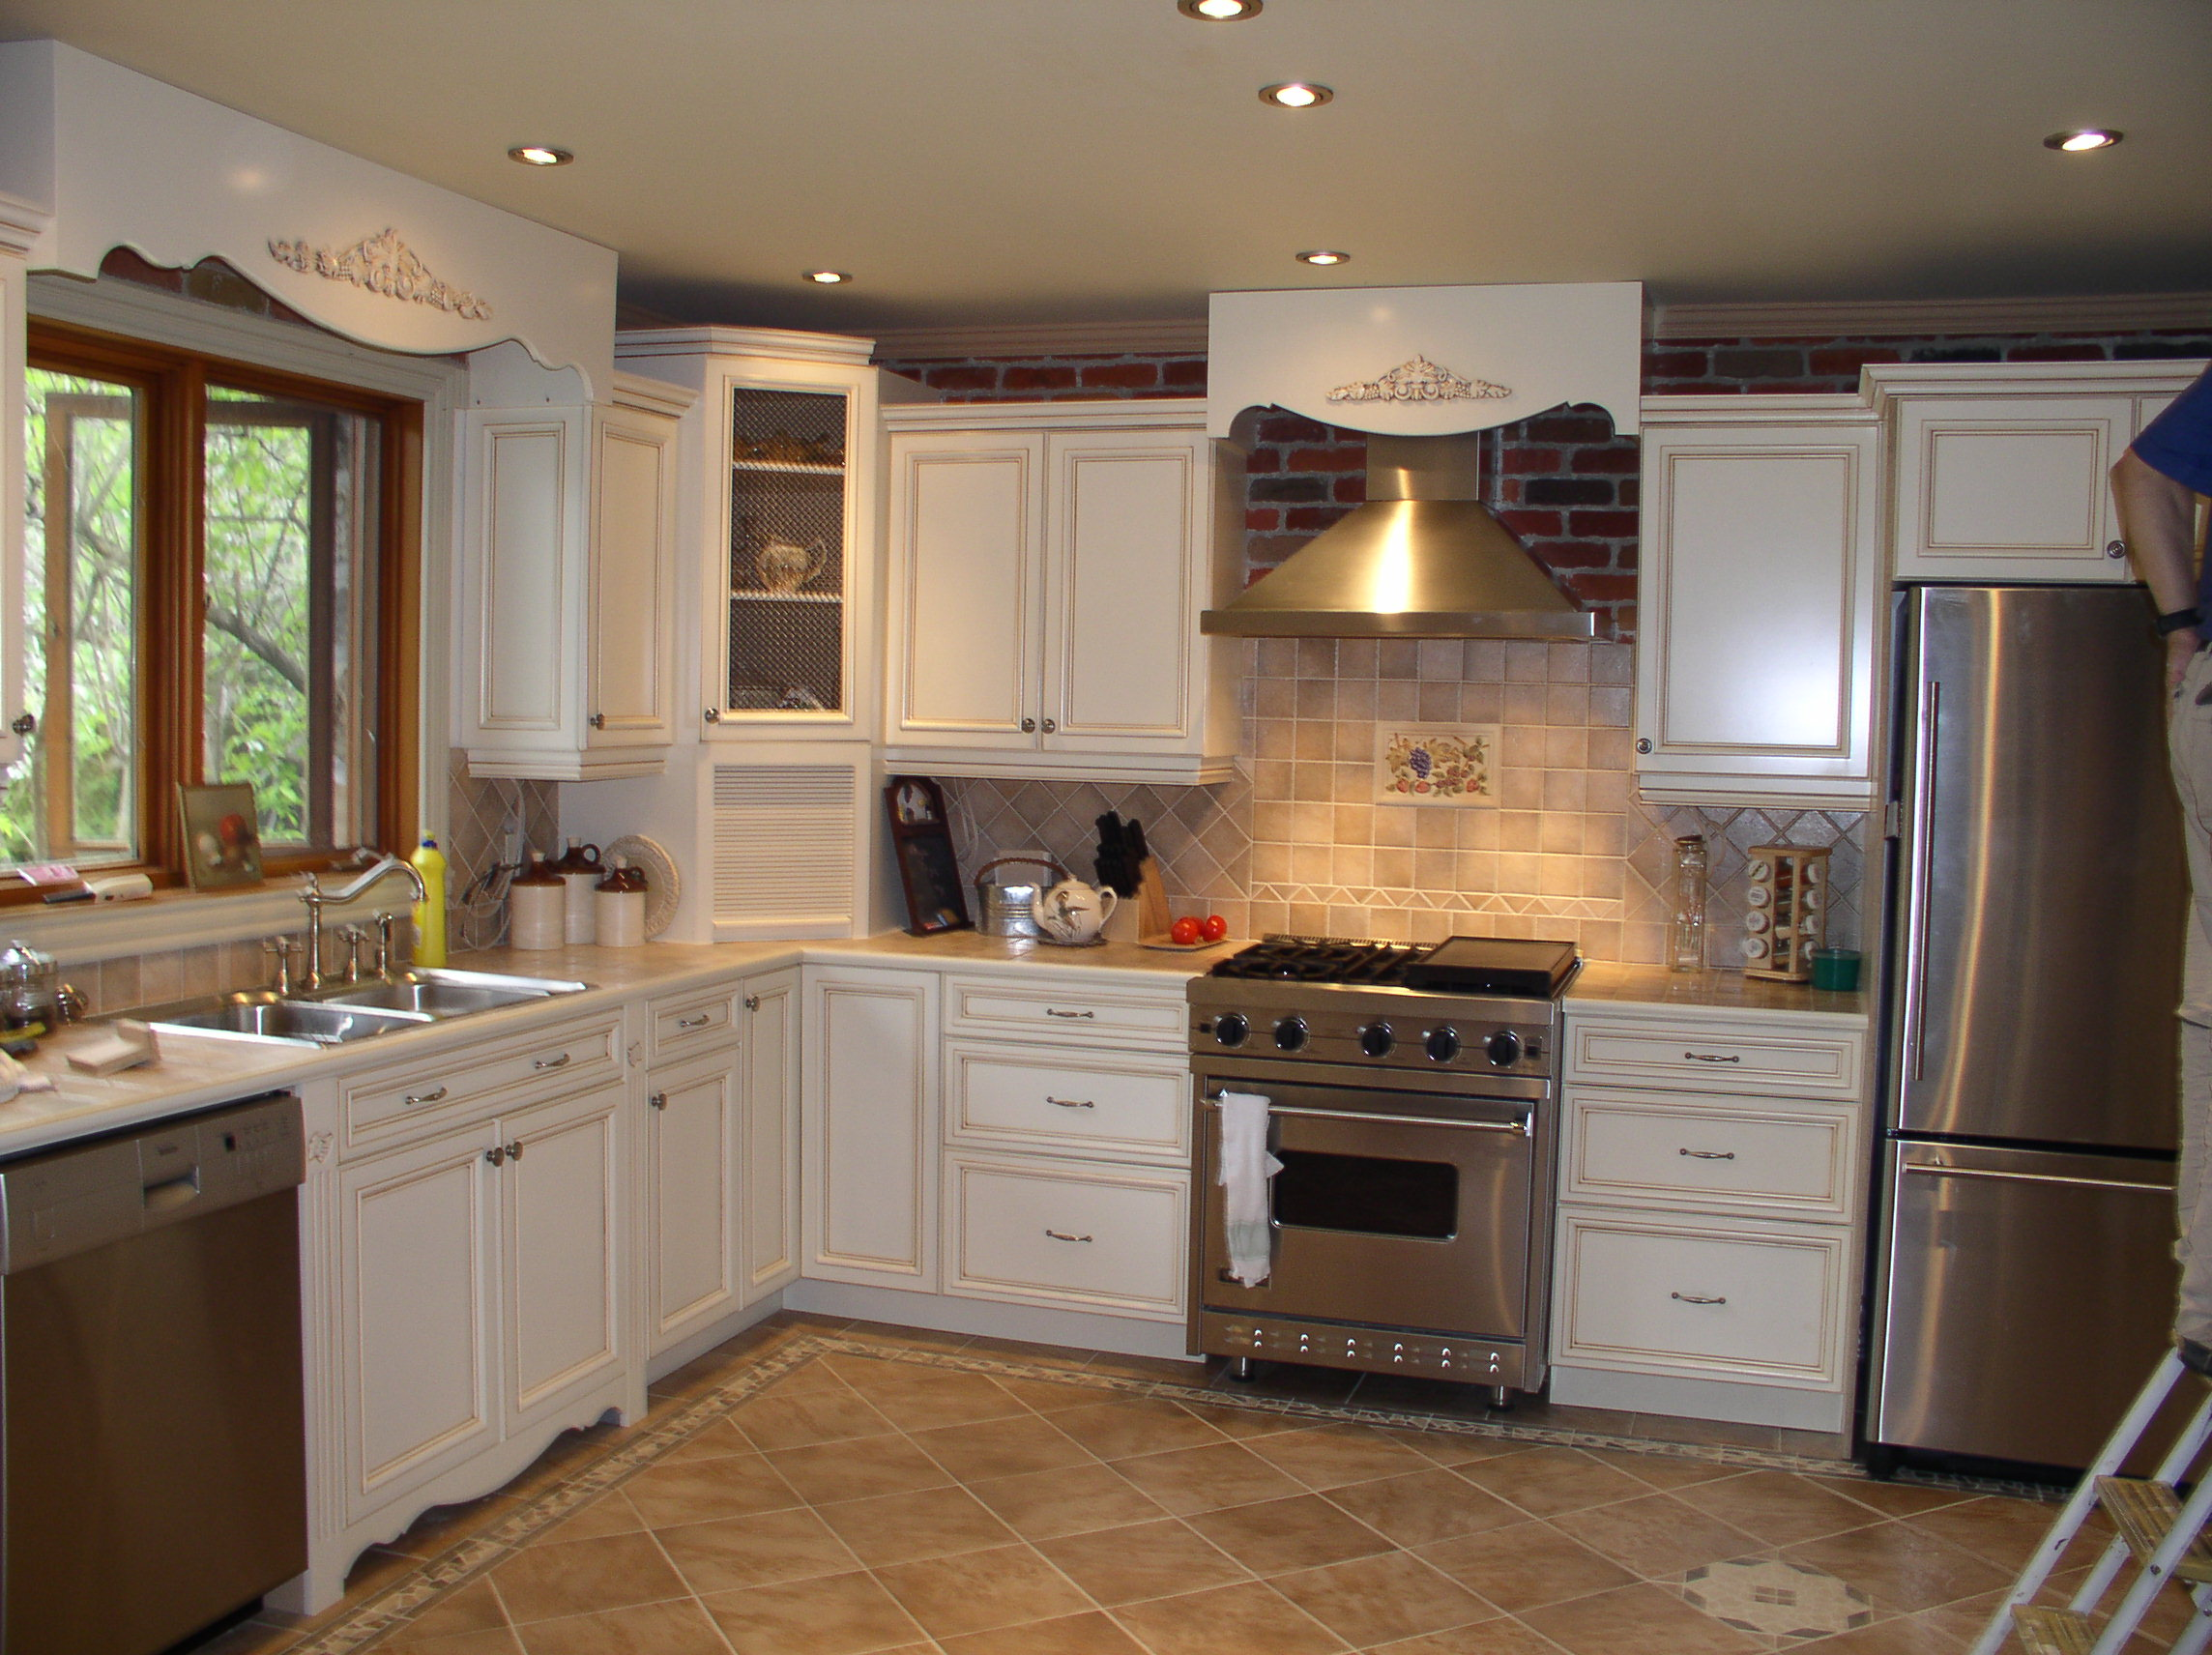 Home improvement ideas kitchen